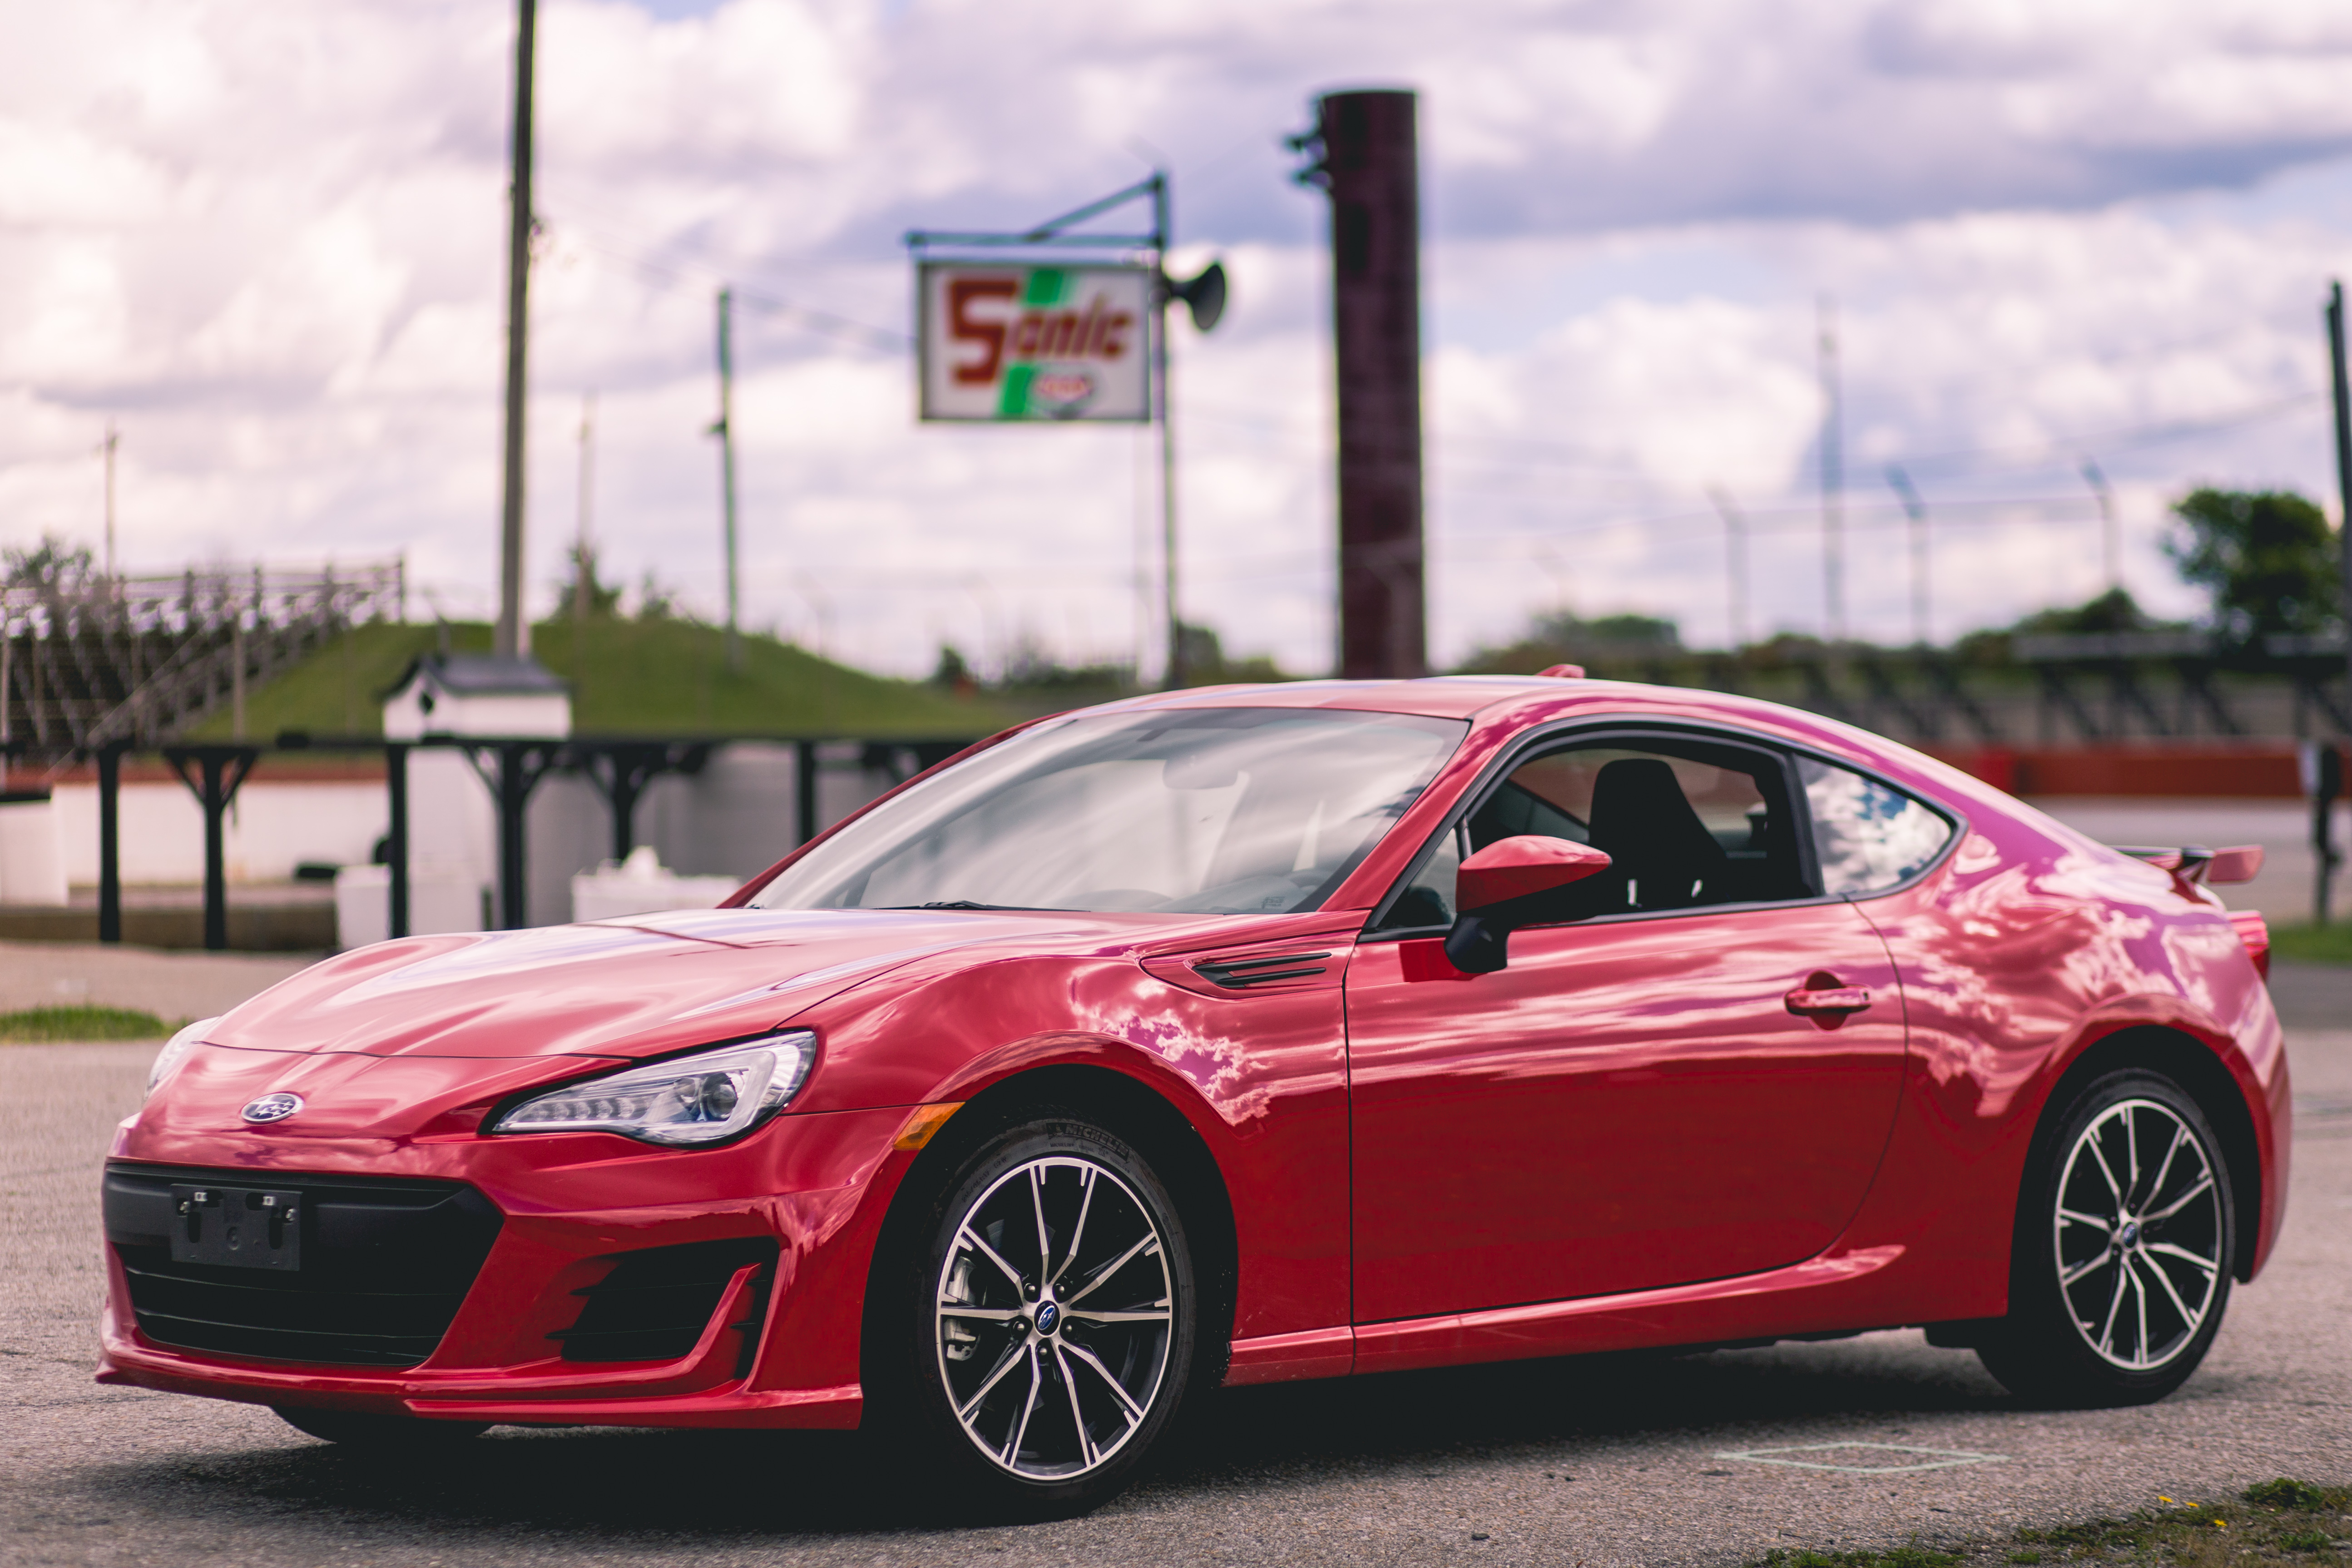 2017 Subaru BRZ: The Genuine Driving Experience Lives On